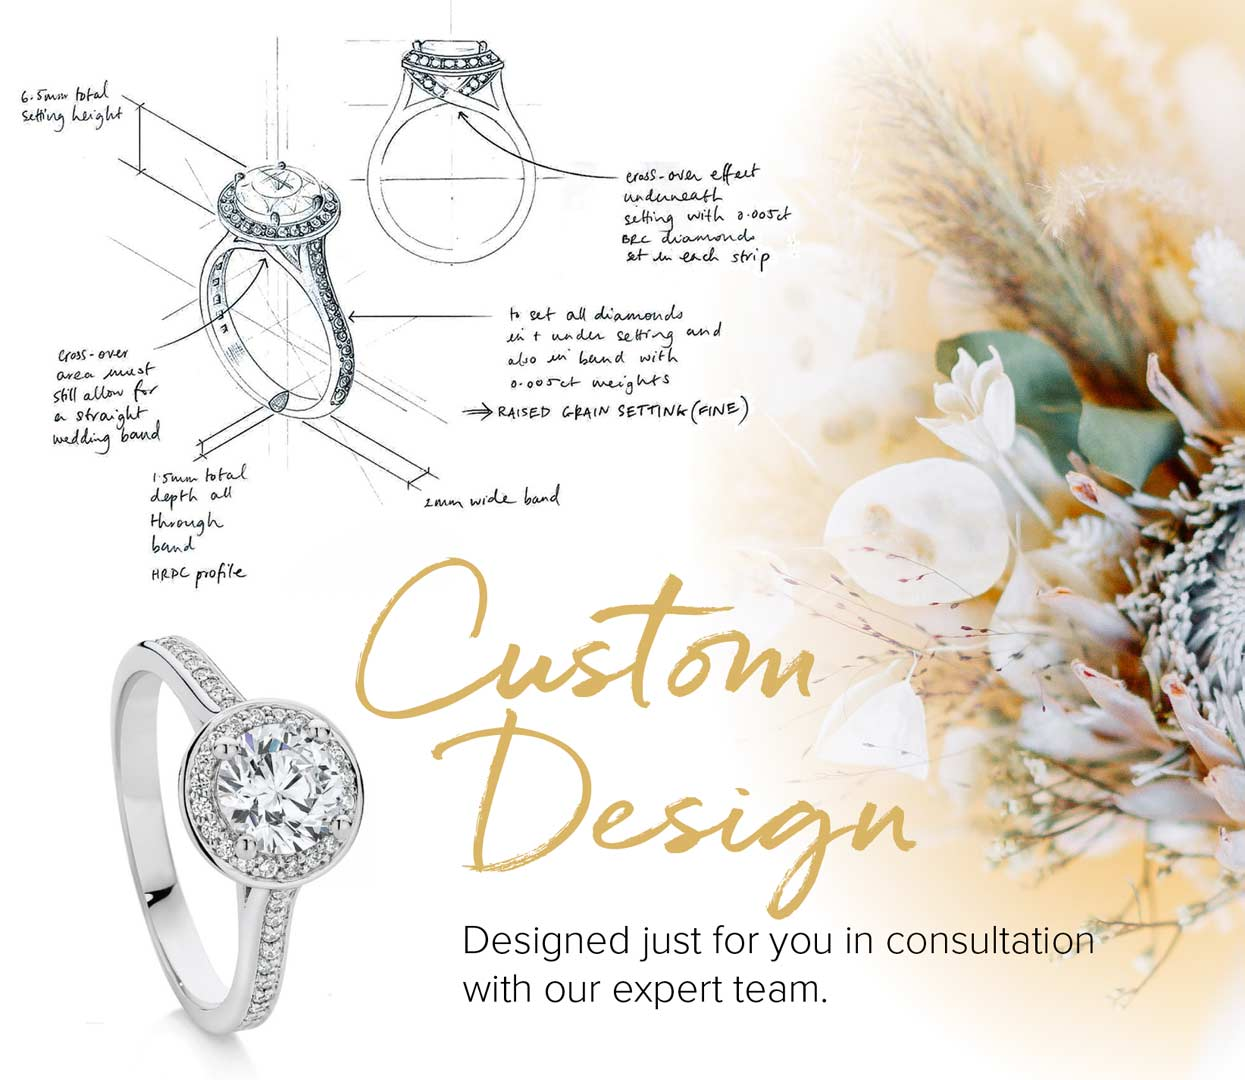 Custom Design Jewellery At Keoghan's Showcase Jewellers